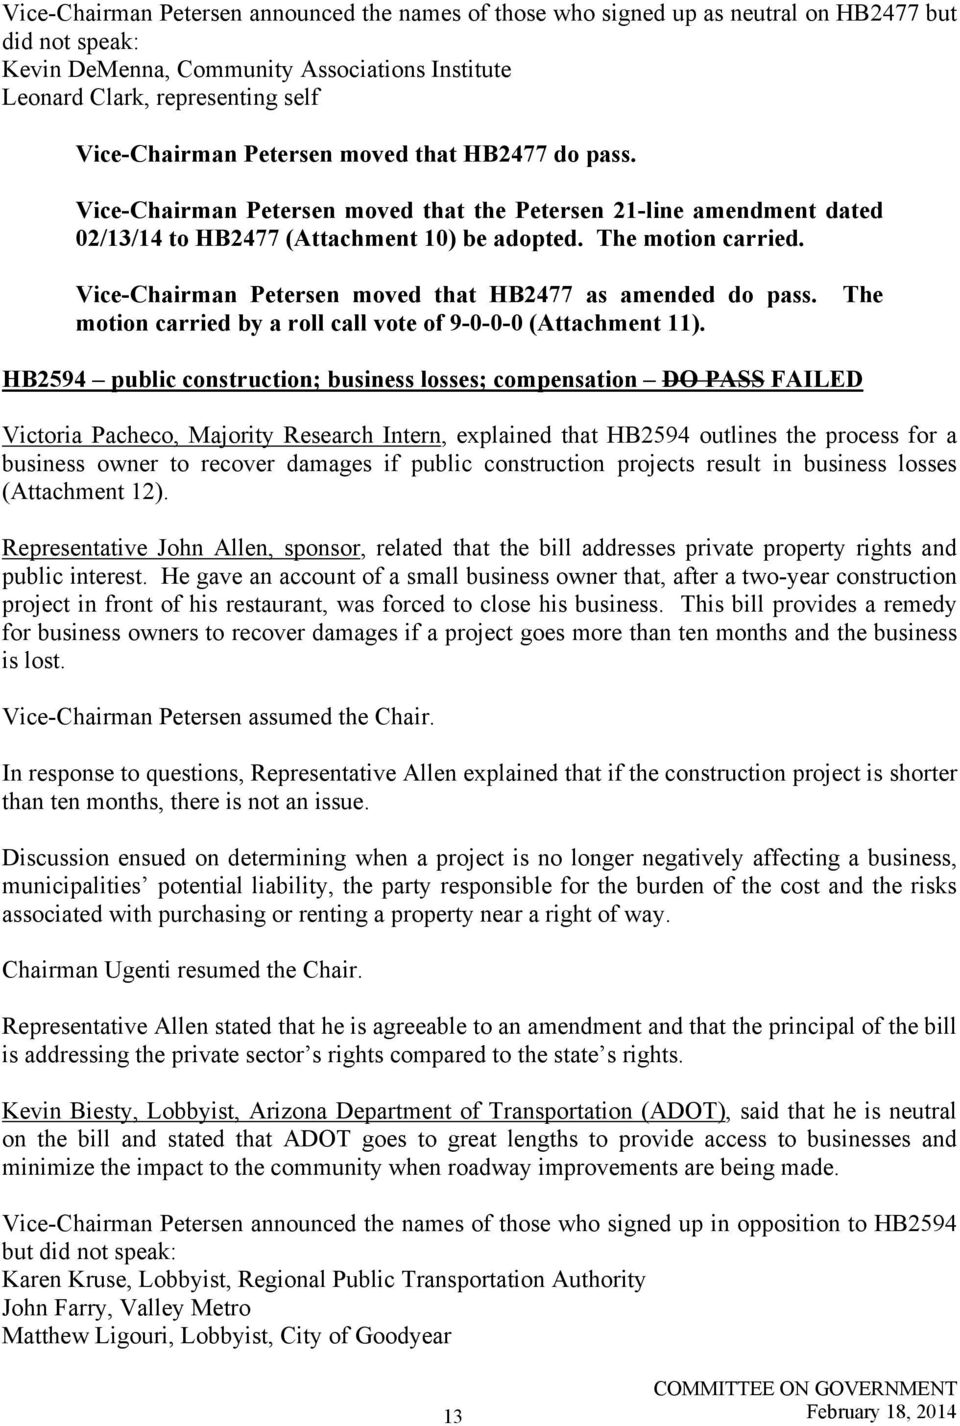 Vice-Chairman Petersen moved that HB2477 as amended do pass. The motion carried by a roll call vote of 9-0-0-0 (Attachment 11).